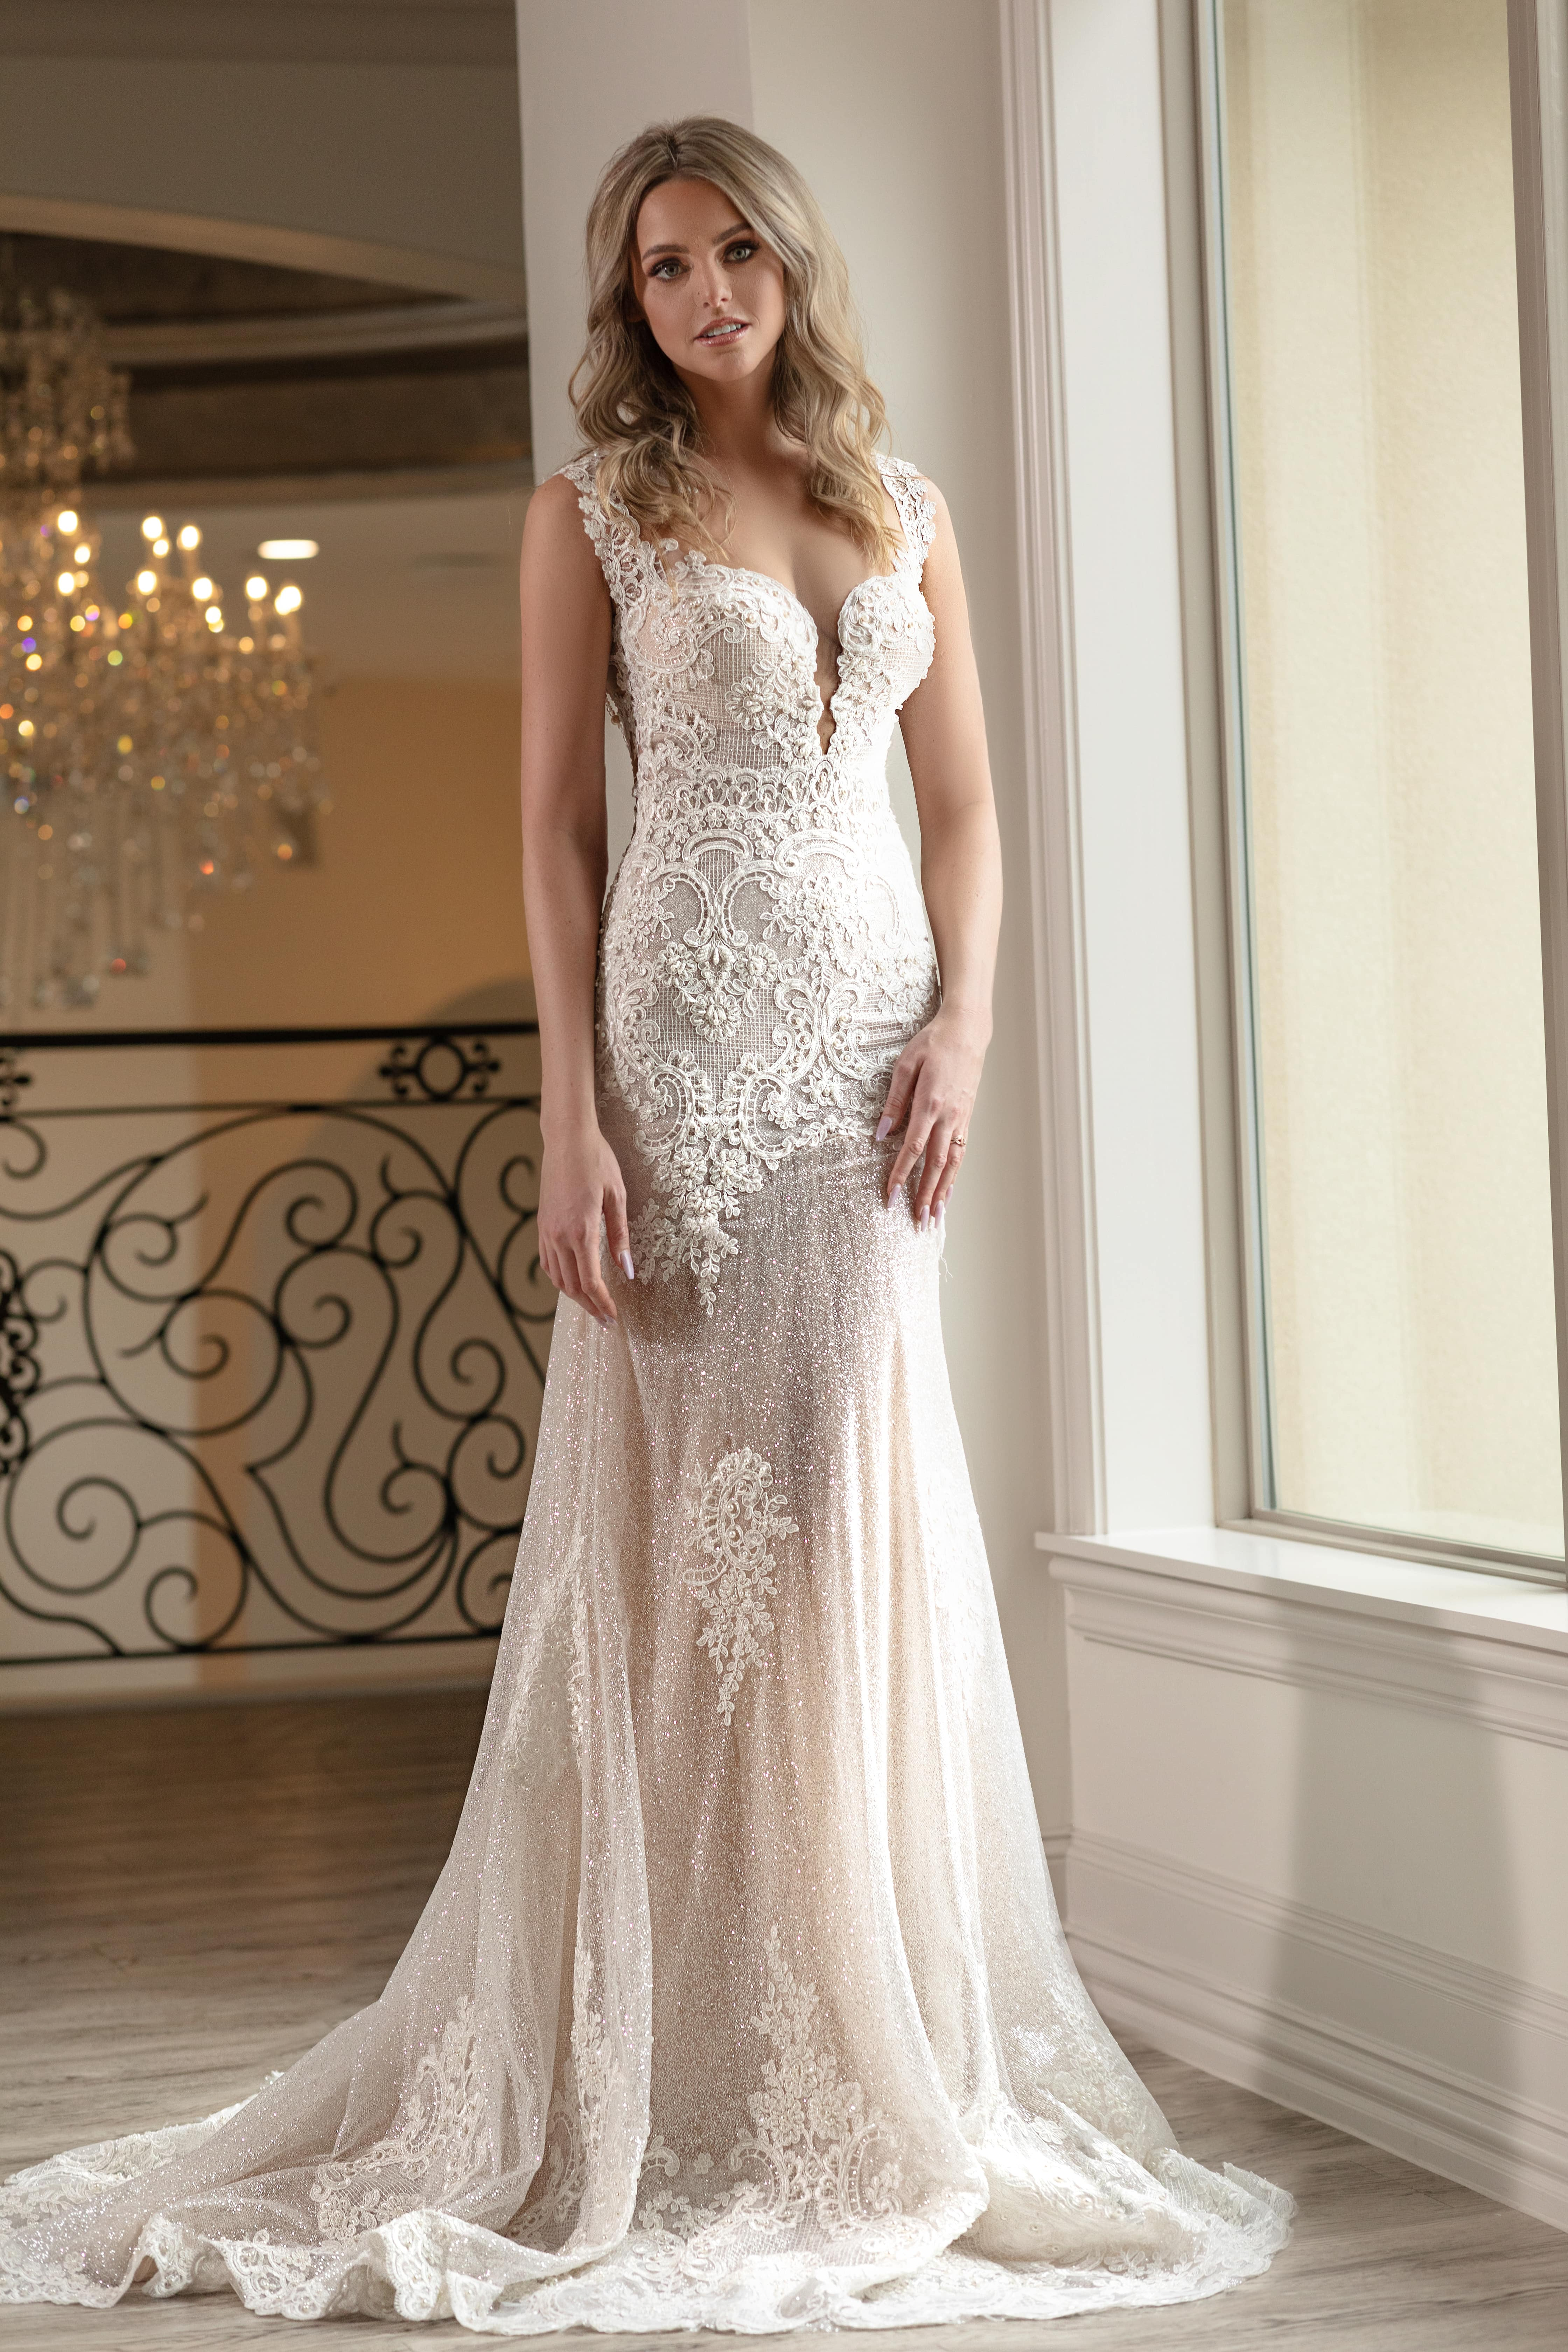 Knotting Hill Collection by Naama & Anat Haute Couture, Luxury Wedding Dress for Destination Wedding Blog Adriana Weddings